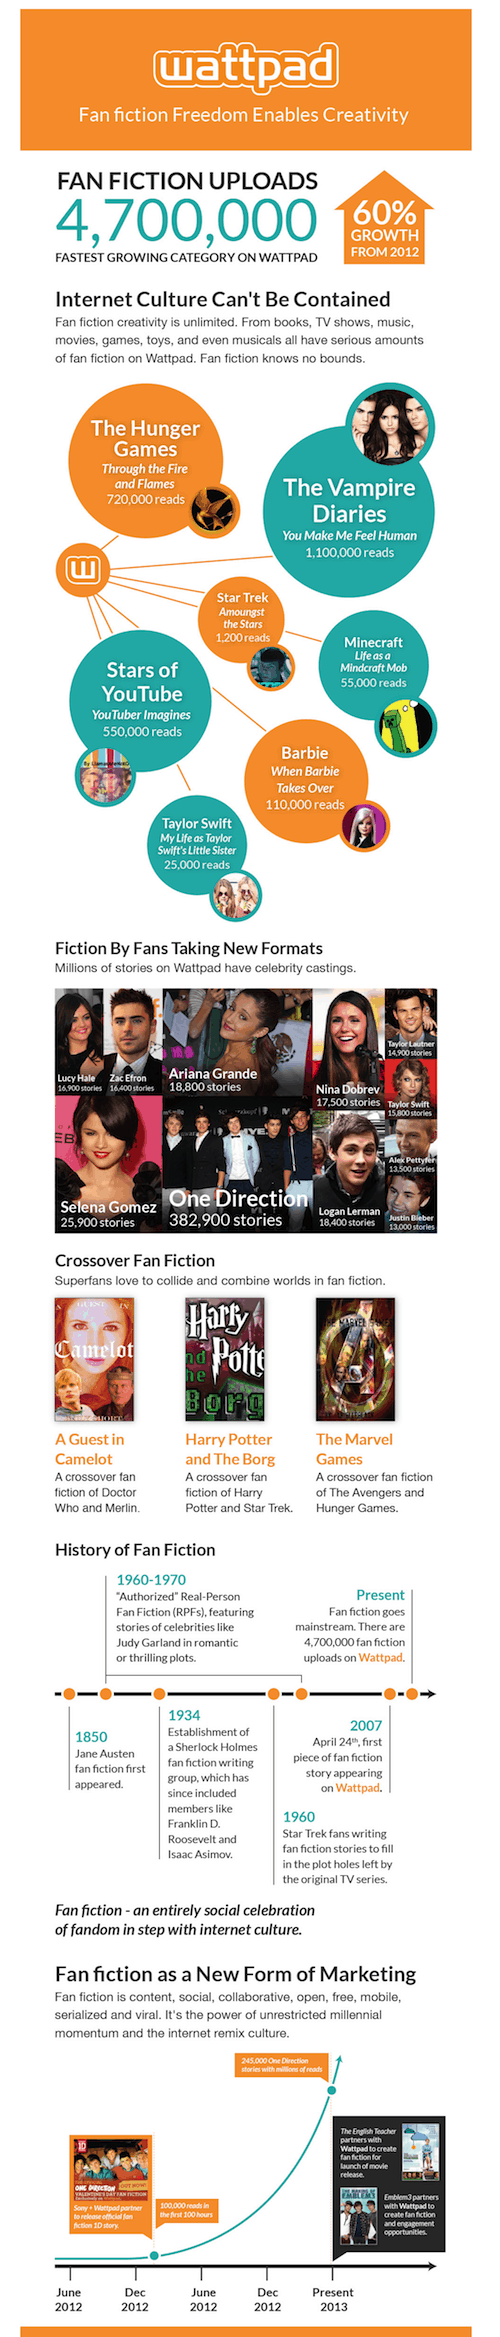 The Past, Present and Future of Fan Fiction (Infographic)  The